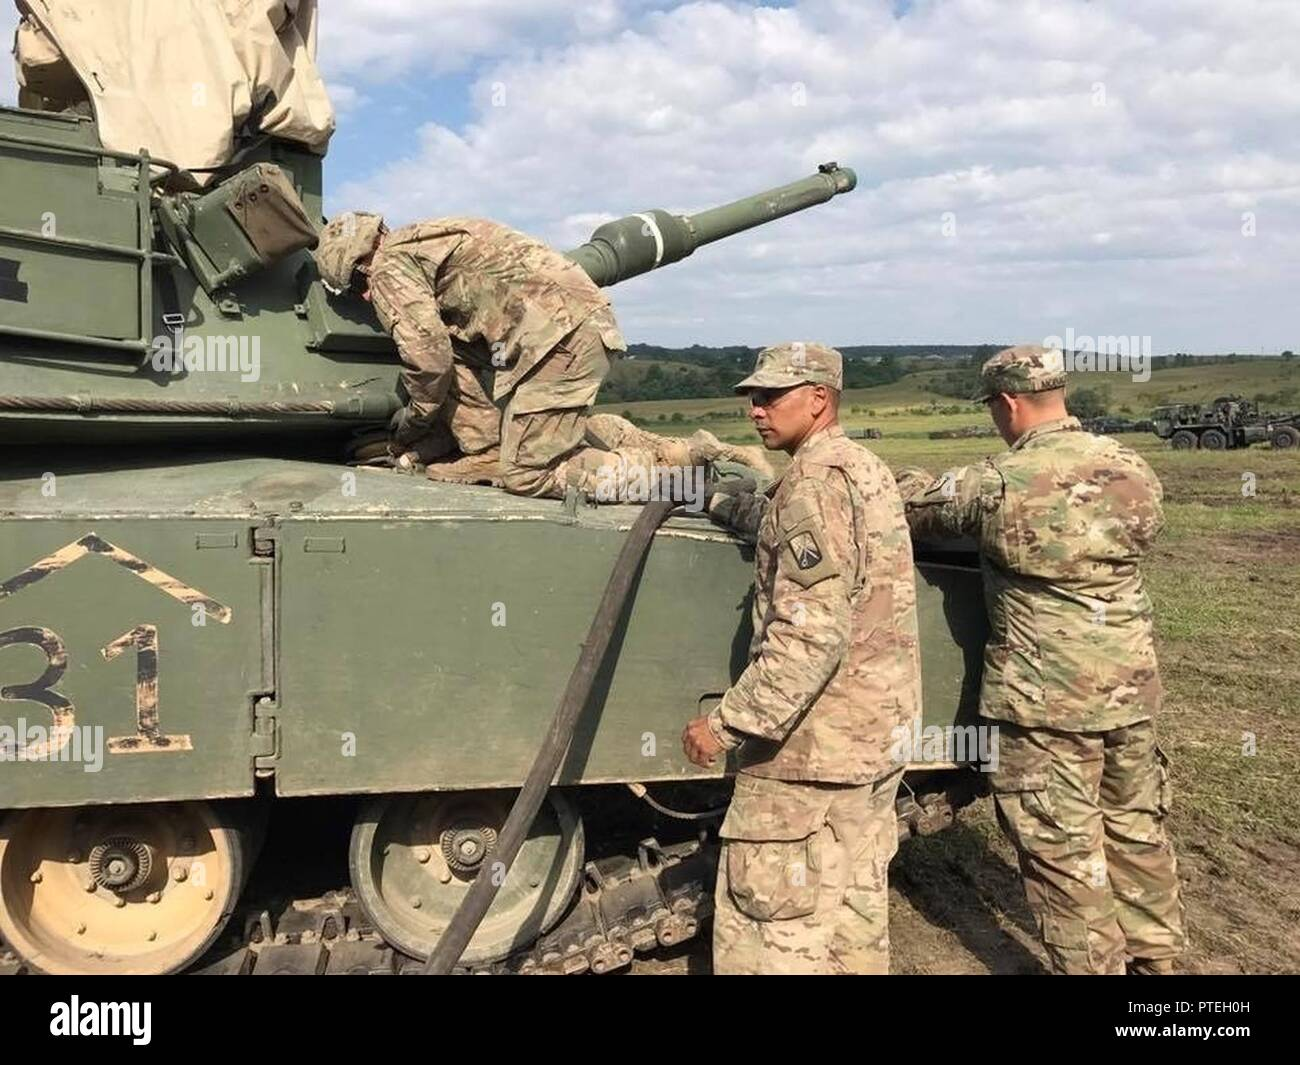 Sgt Cruz Cotto A Motor Transport Operator With 515th Transportation Company Uses The Retail Fuel Hose Of The M969 5 000 Gallon Fuel Tanker To Refuel An M1 Abrams Tank In Cincu Romania